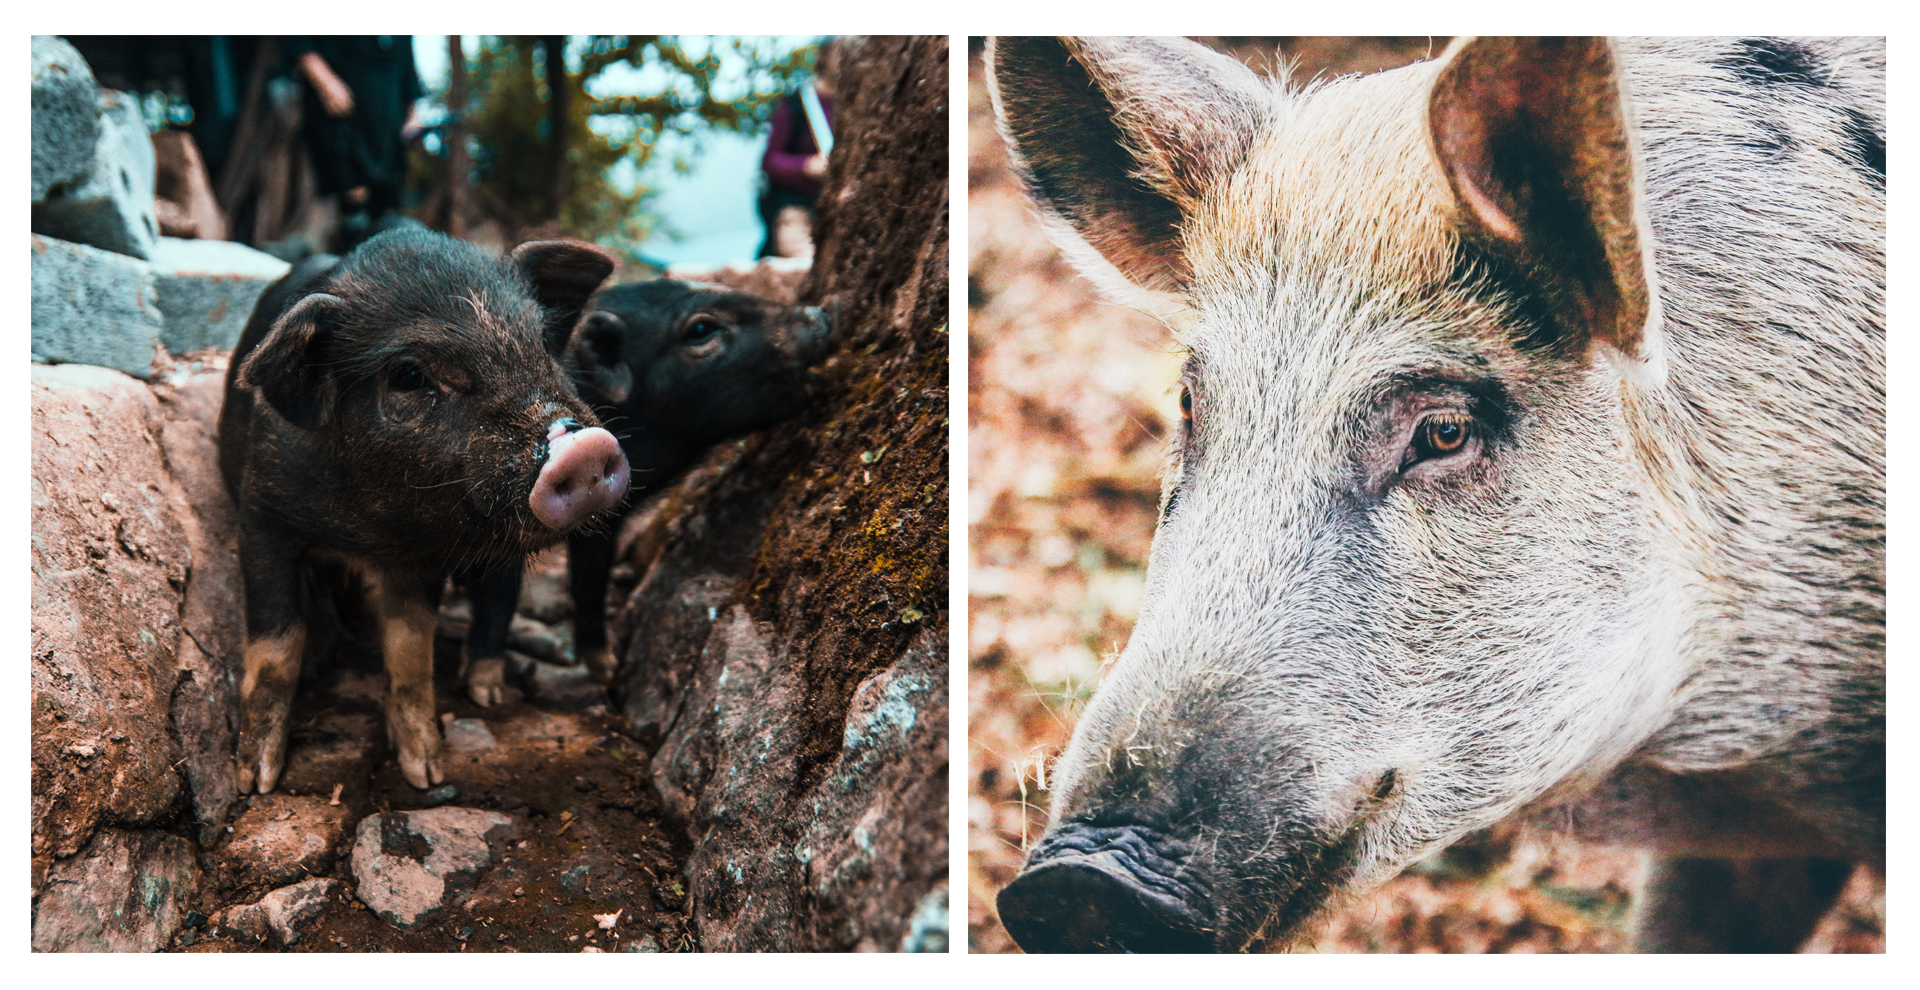 Close-up of pig and wild boar